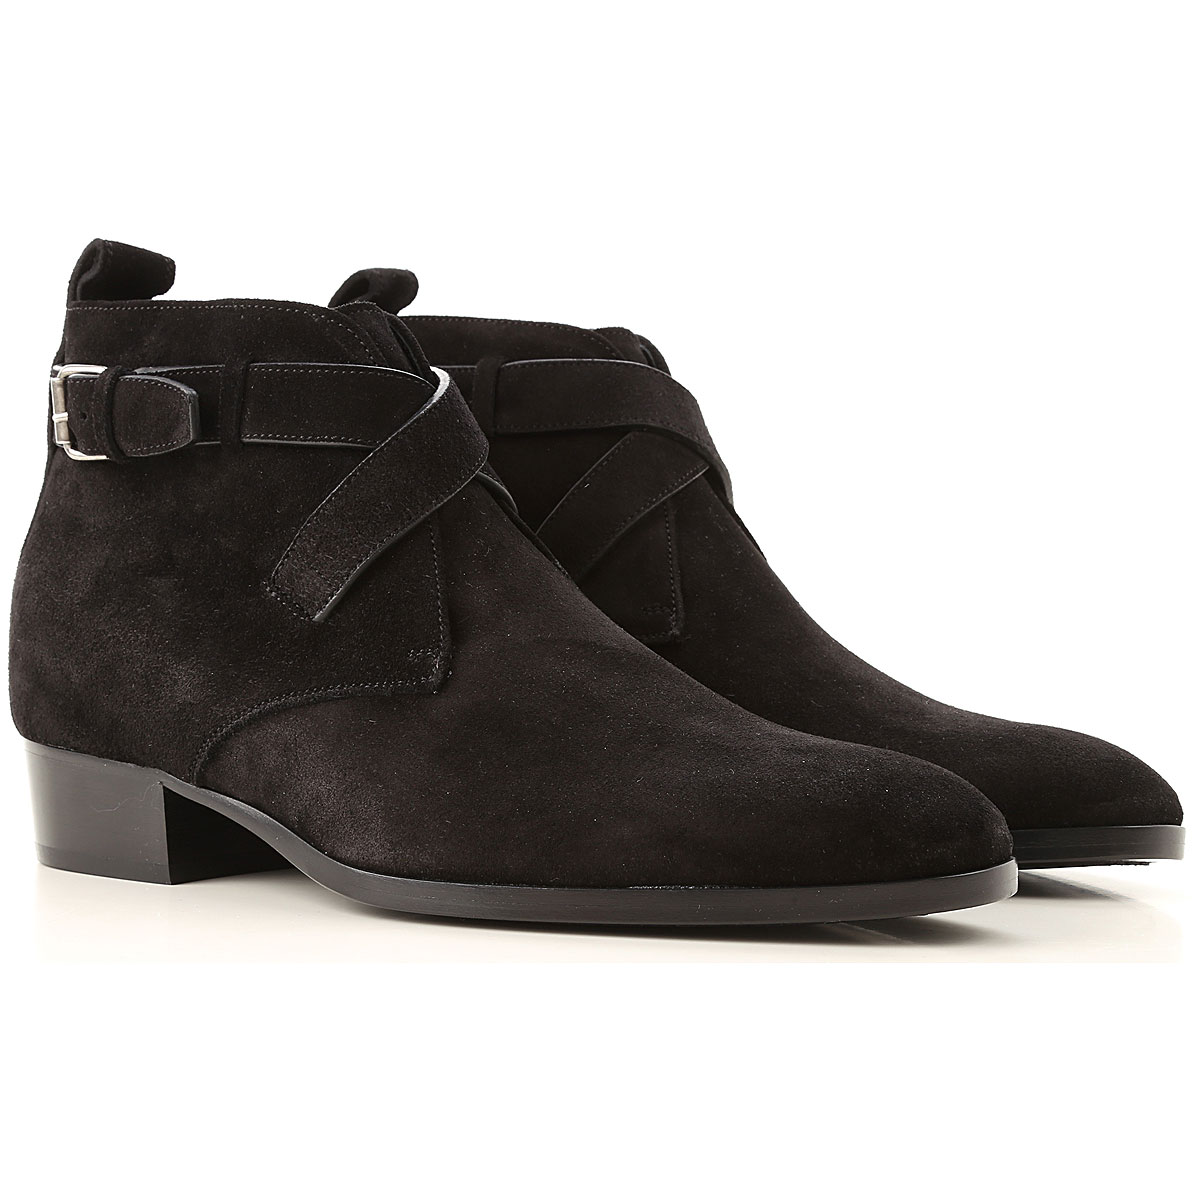 Yves Saint Laurent Boots for Men, Booties On Sale, Black, Suede leather, 2019, 10 10.25 10.5 7.5 7.75 8 8.5 9.5